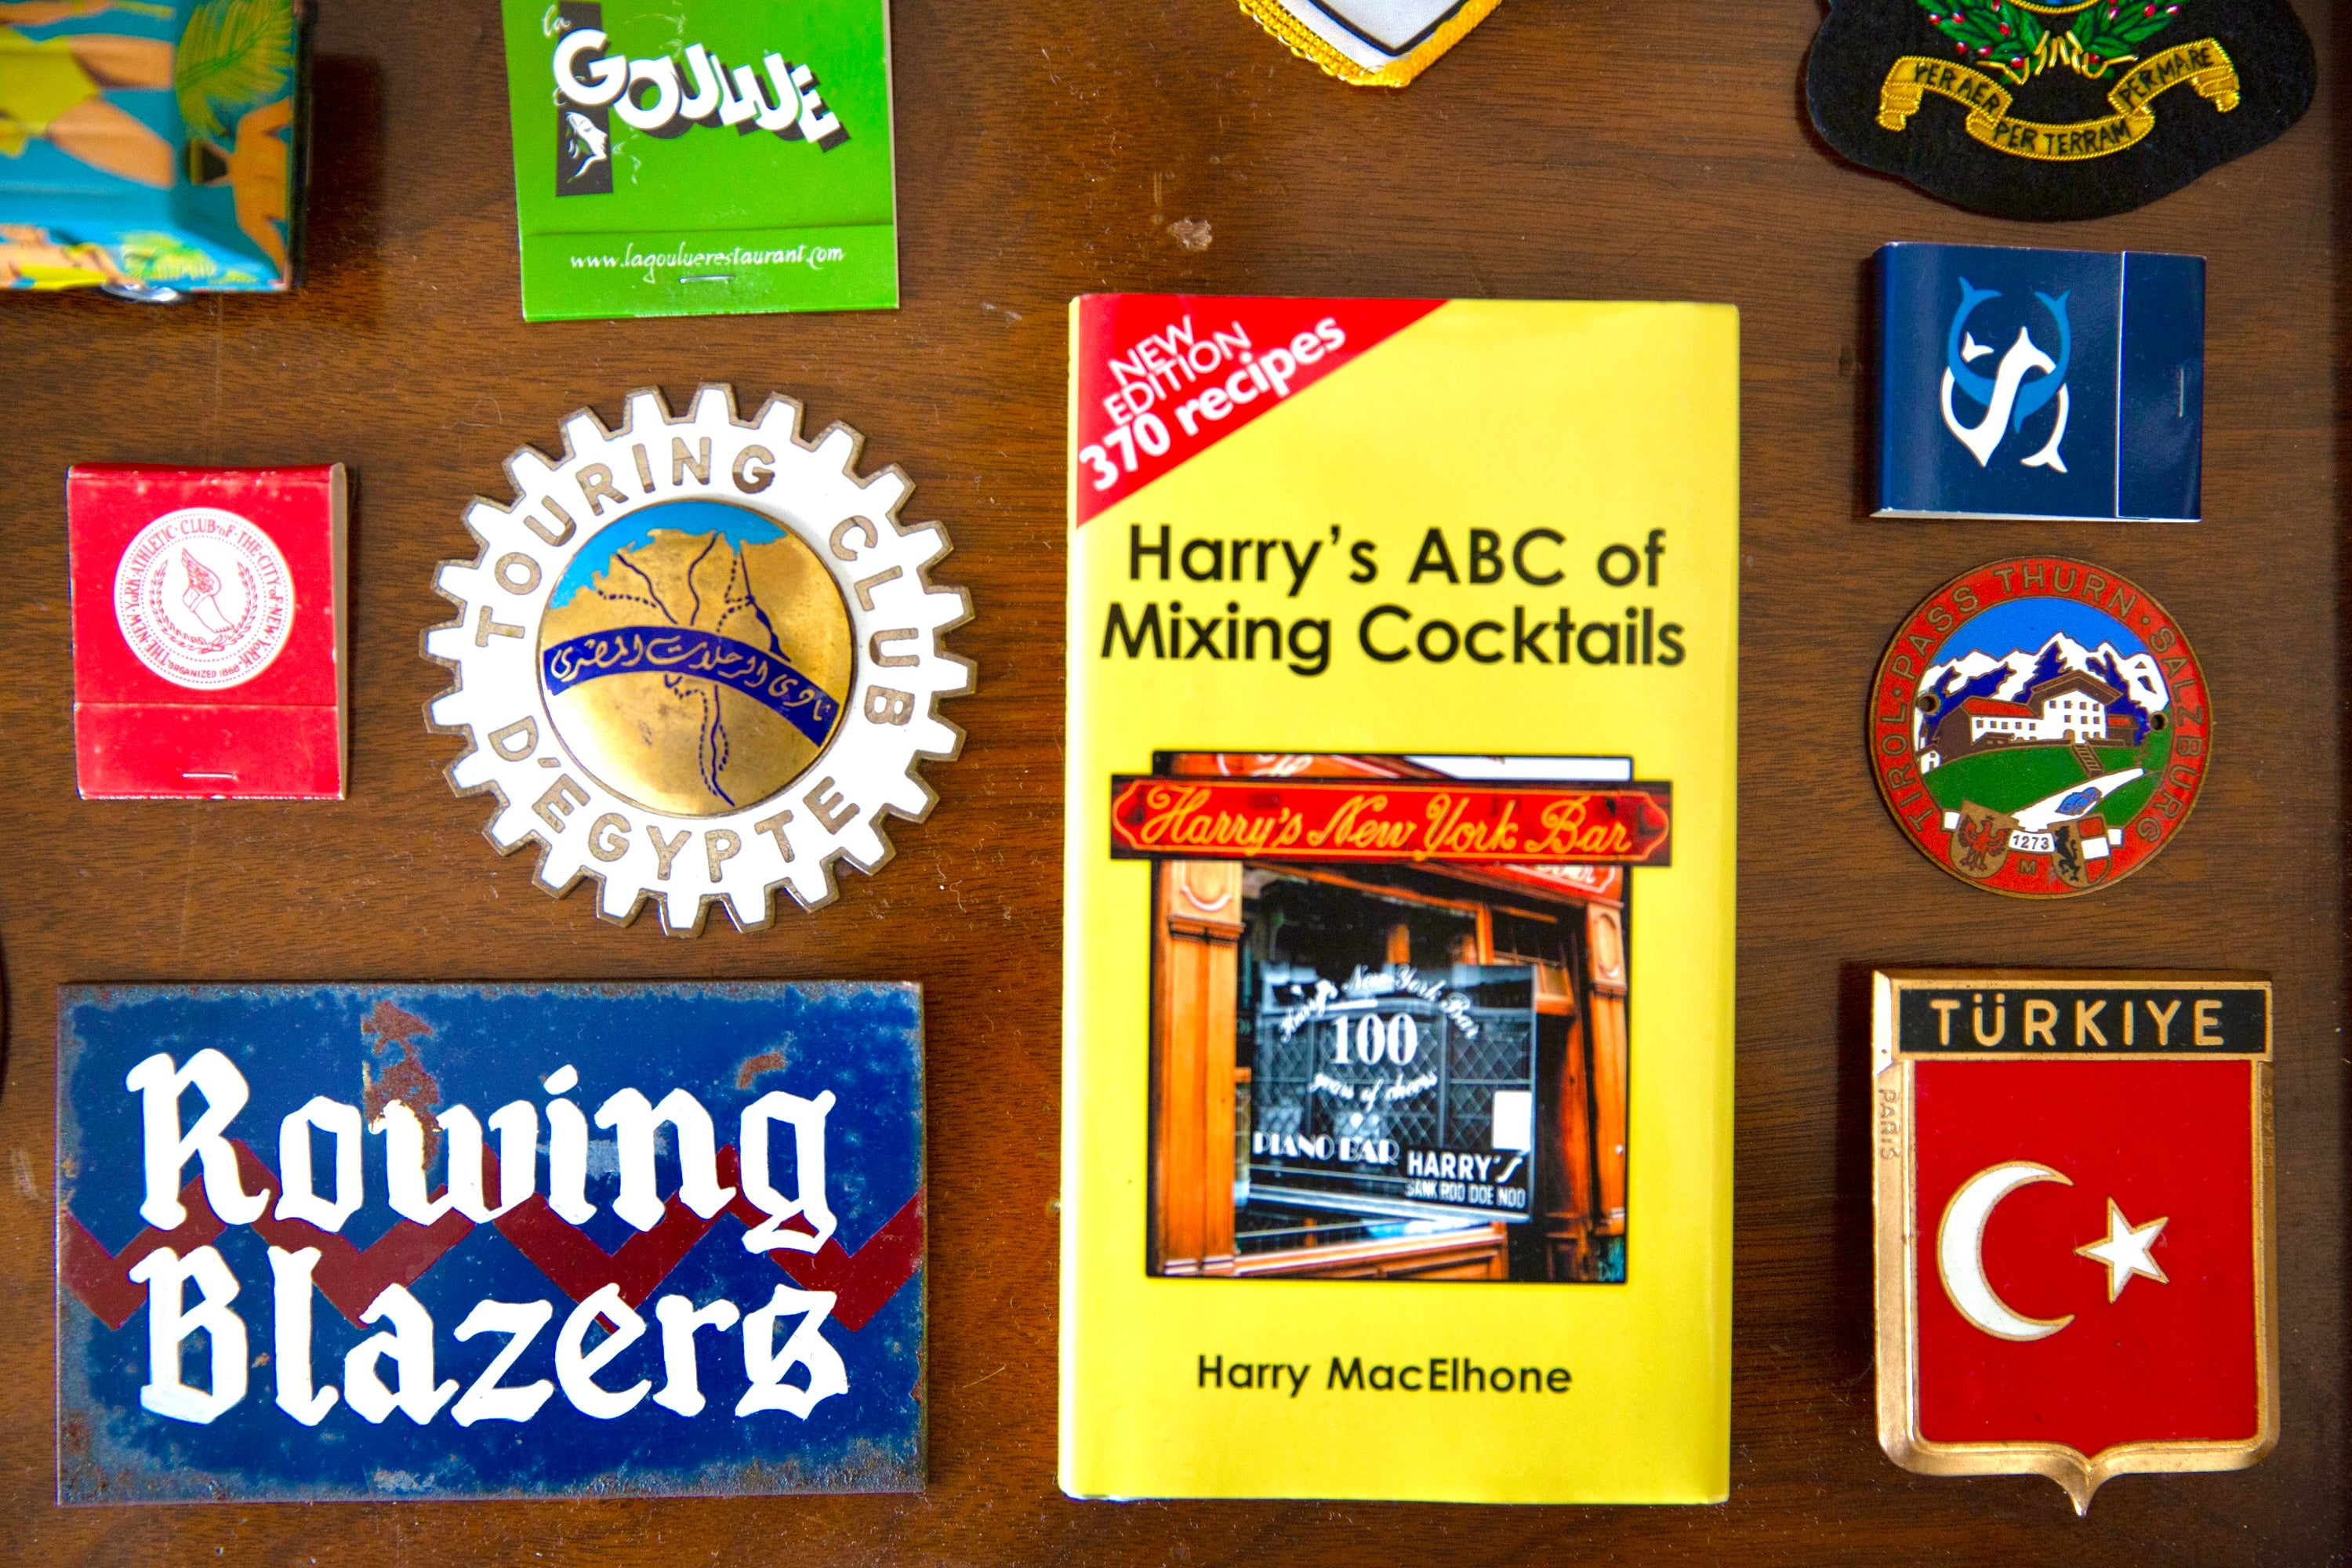 Close-up of various stickers, patches and match books